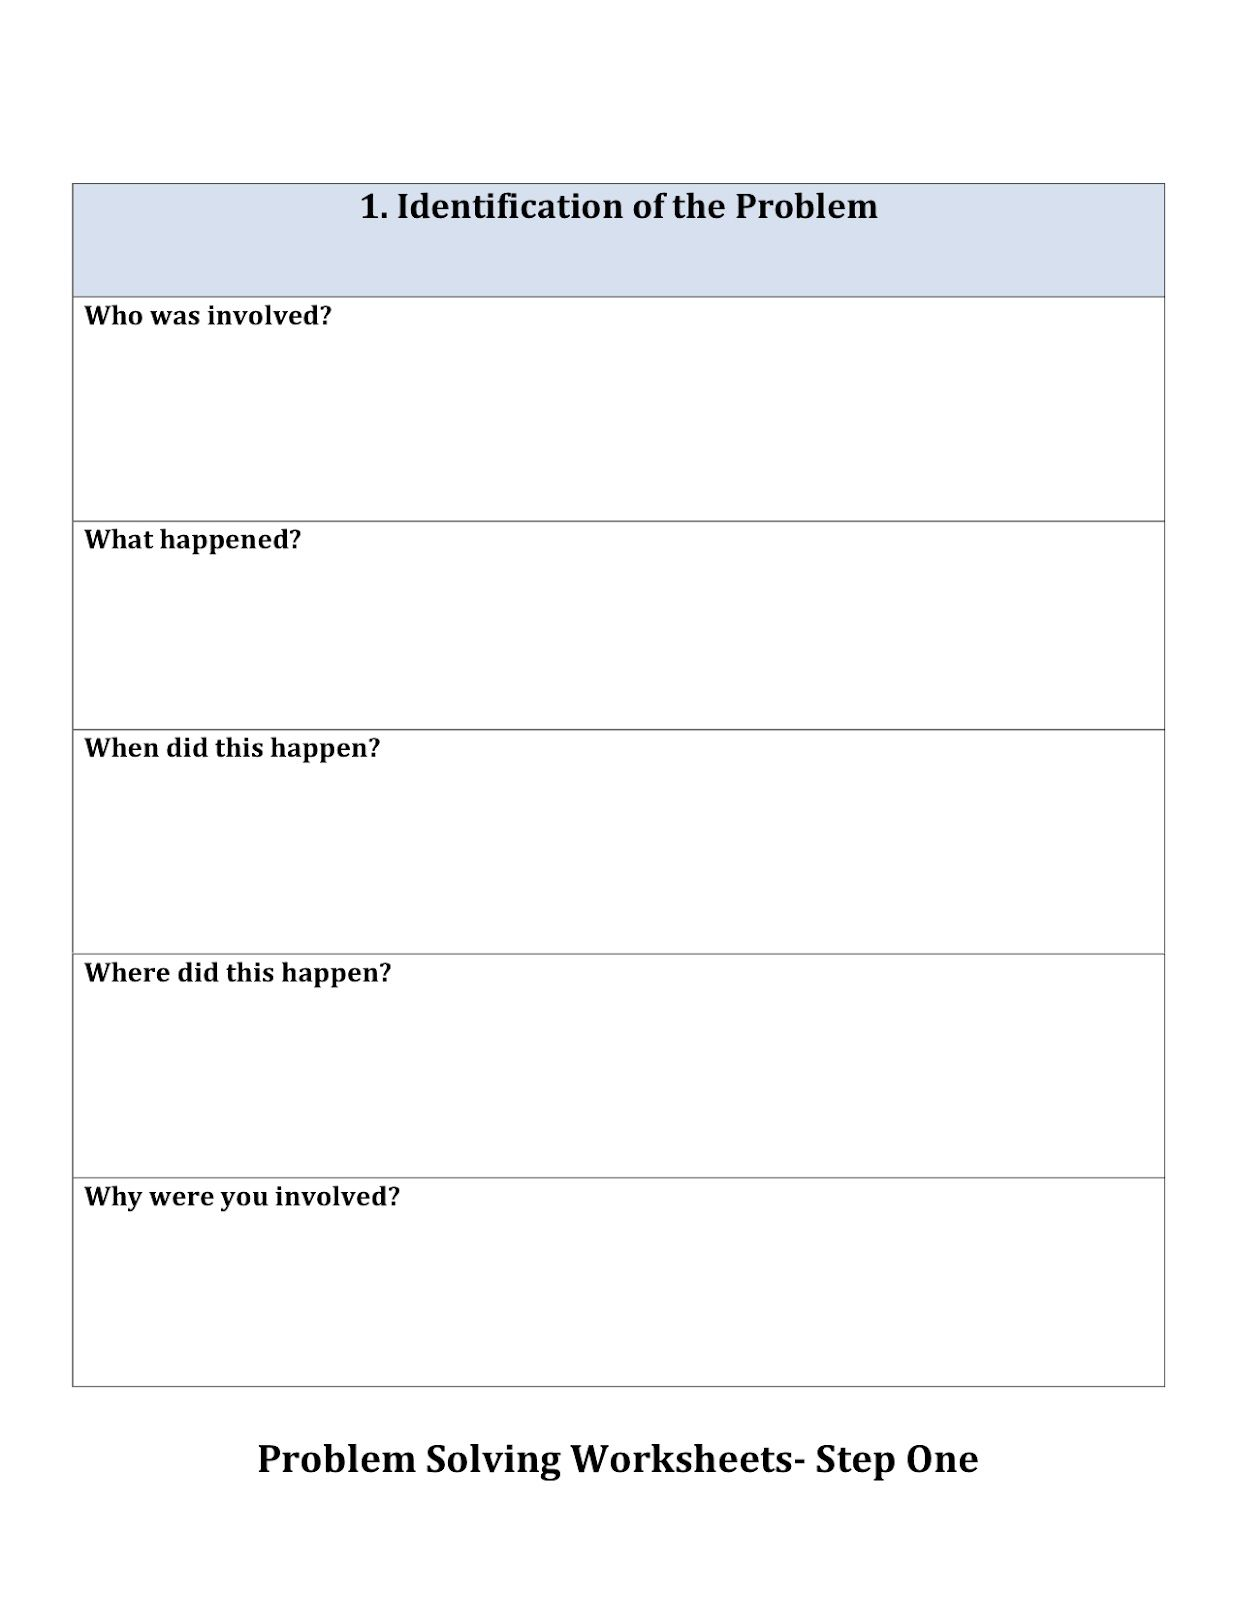 Problem Solving Worksheets 1 1 236 1 600 Pixels